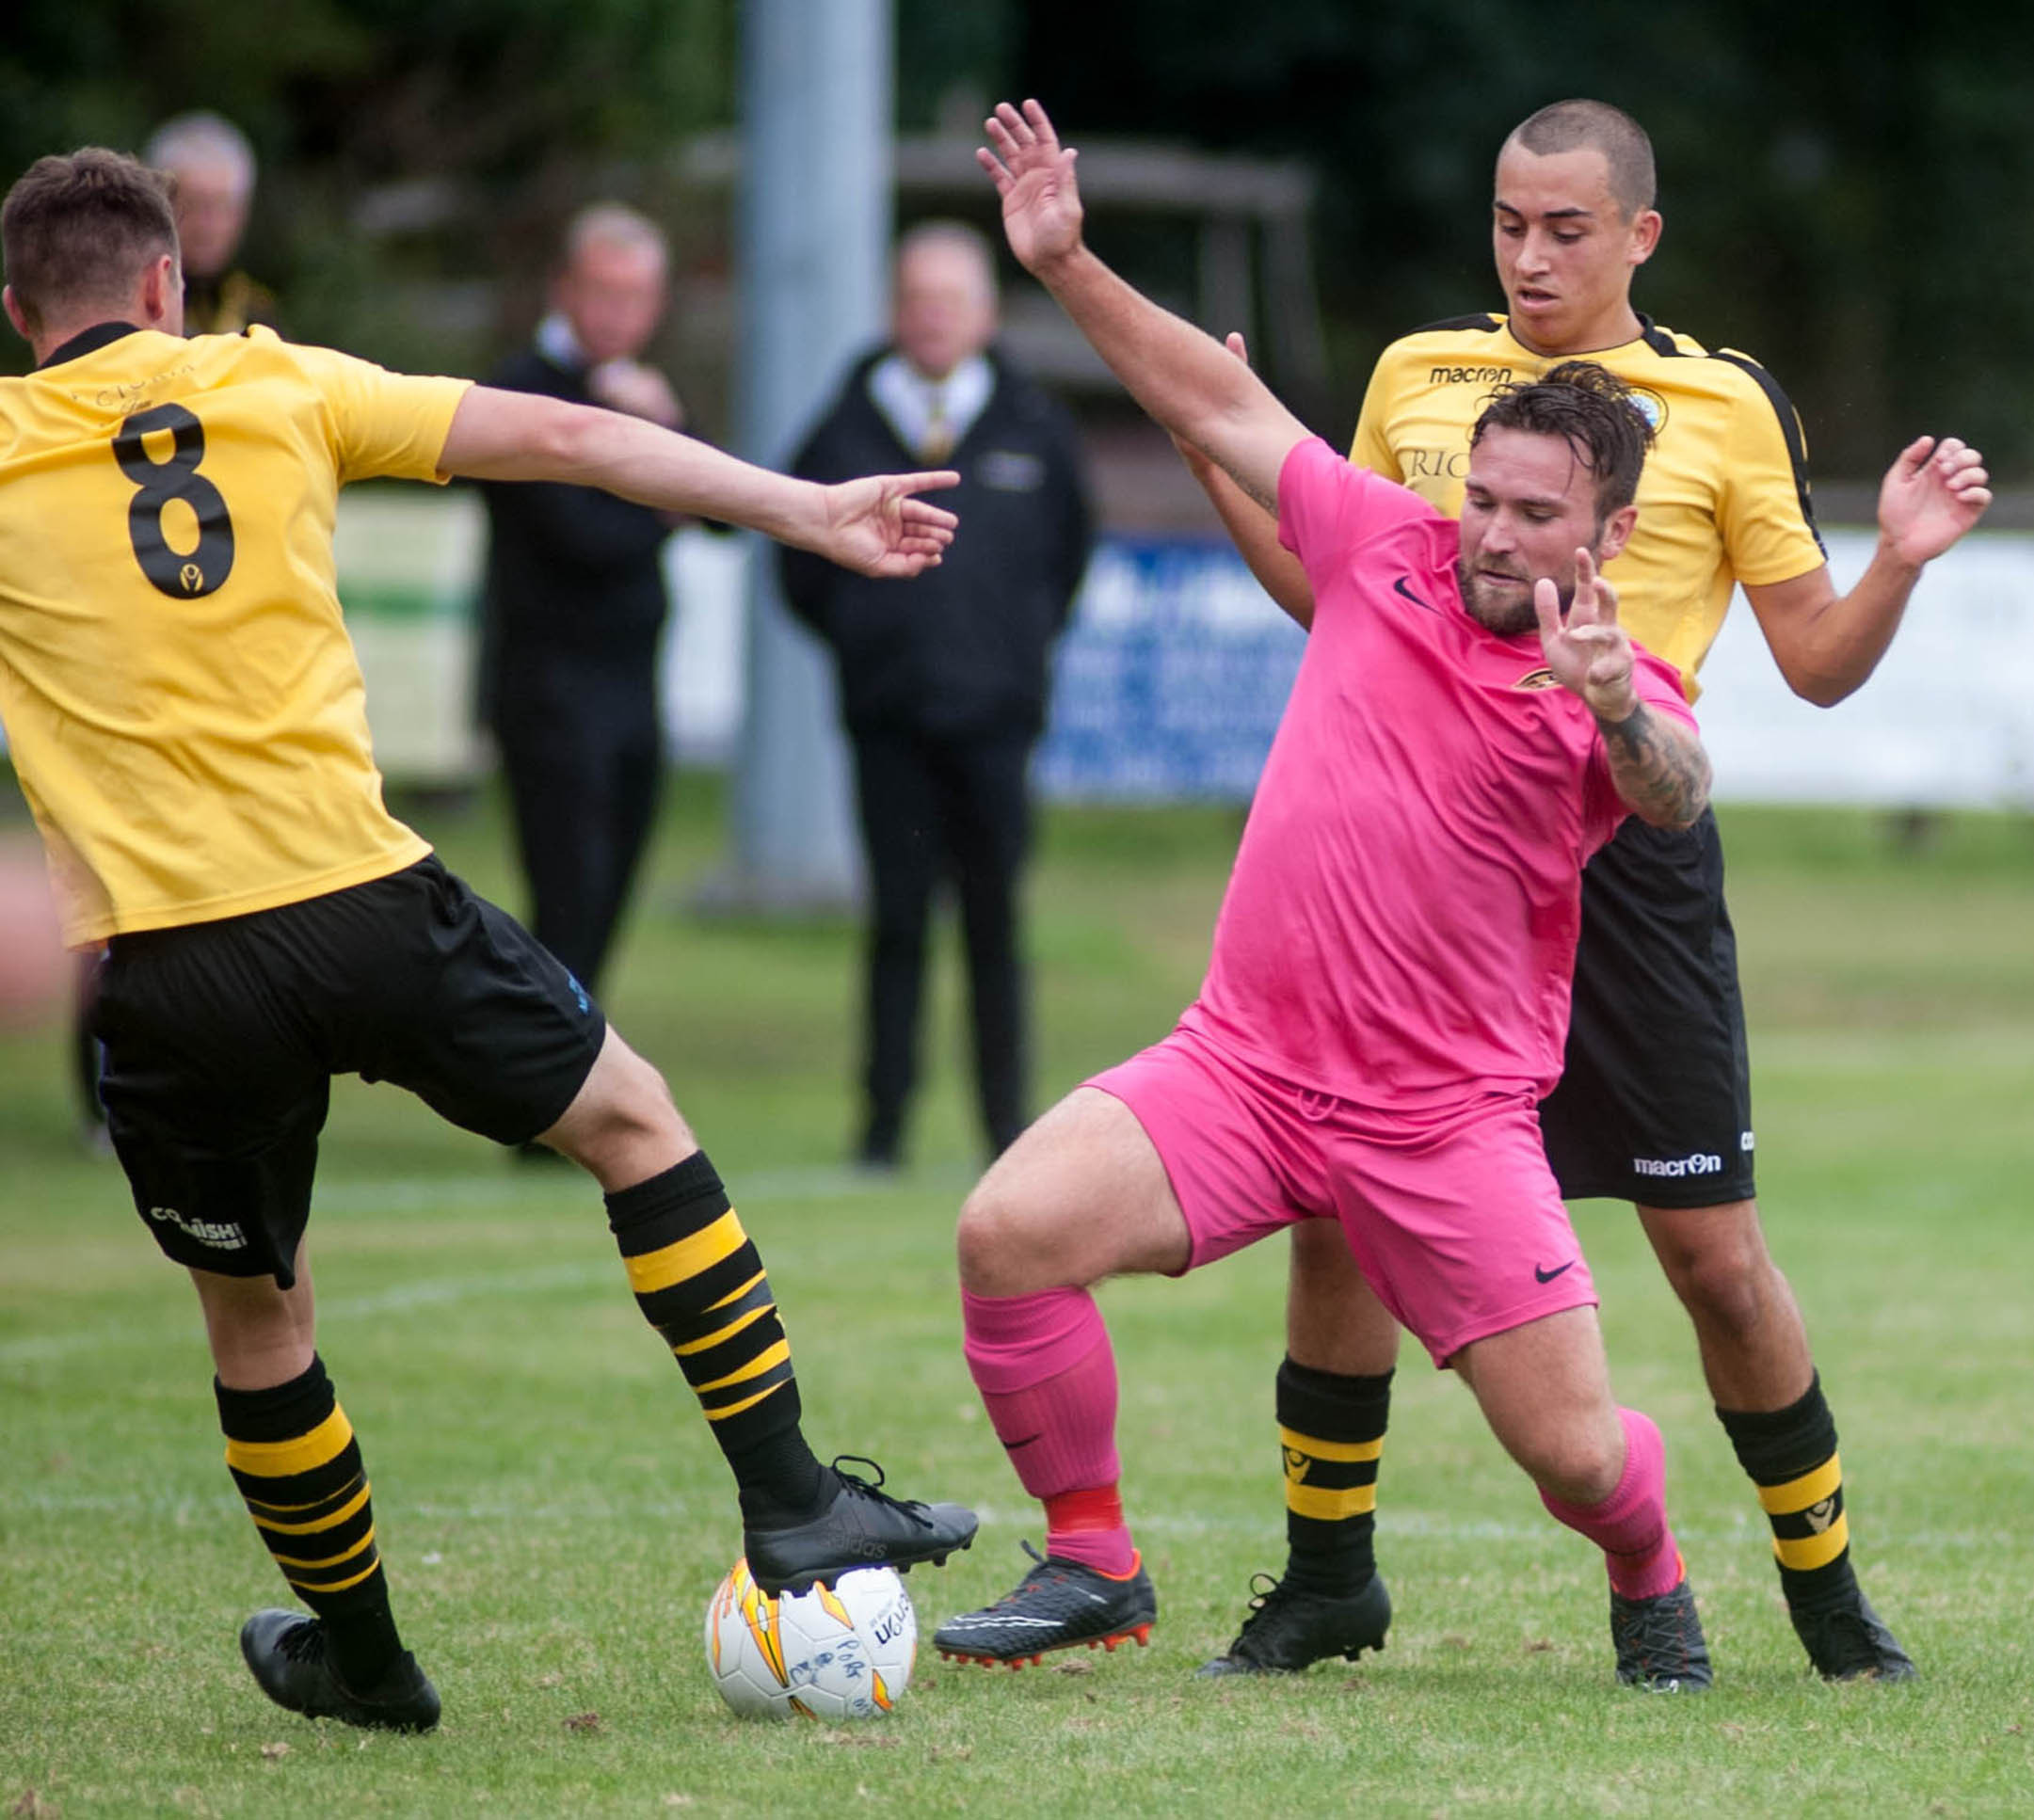 Porthleven versus Torpoint: Porthleven's Dan Greet and Jake Lugg. Picture by Colin Higgs